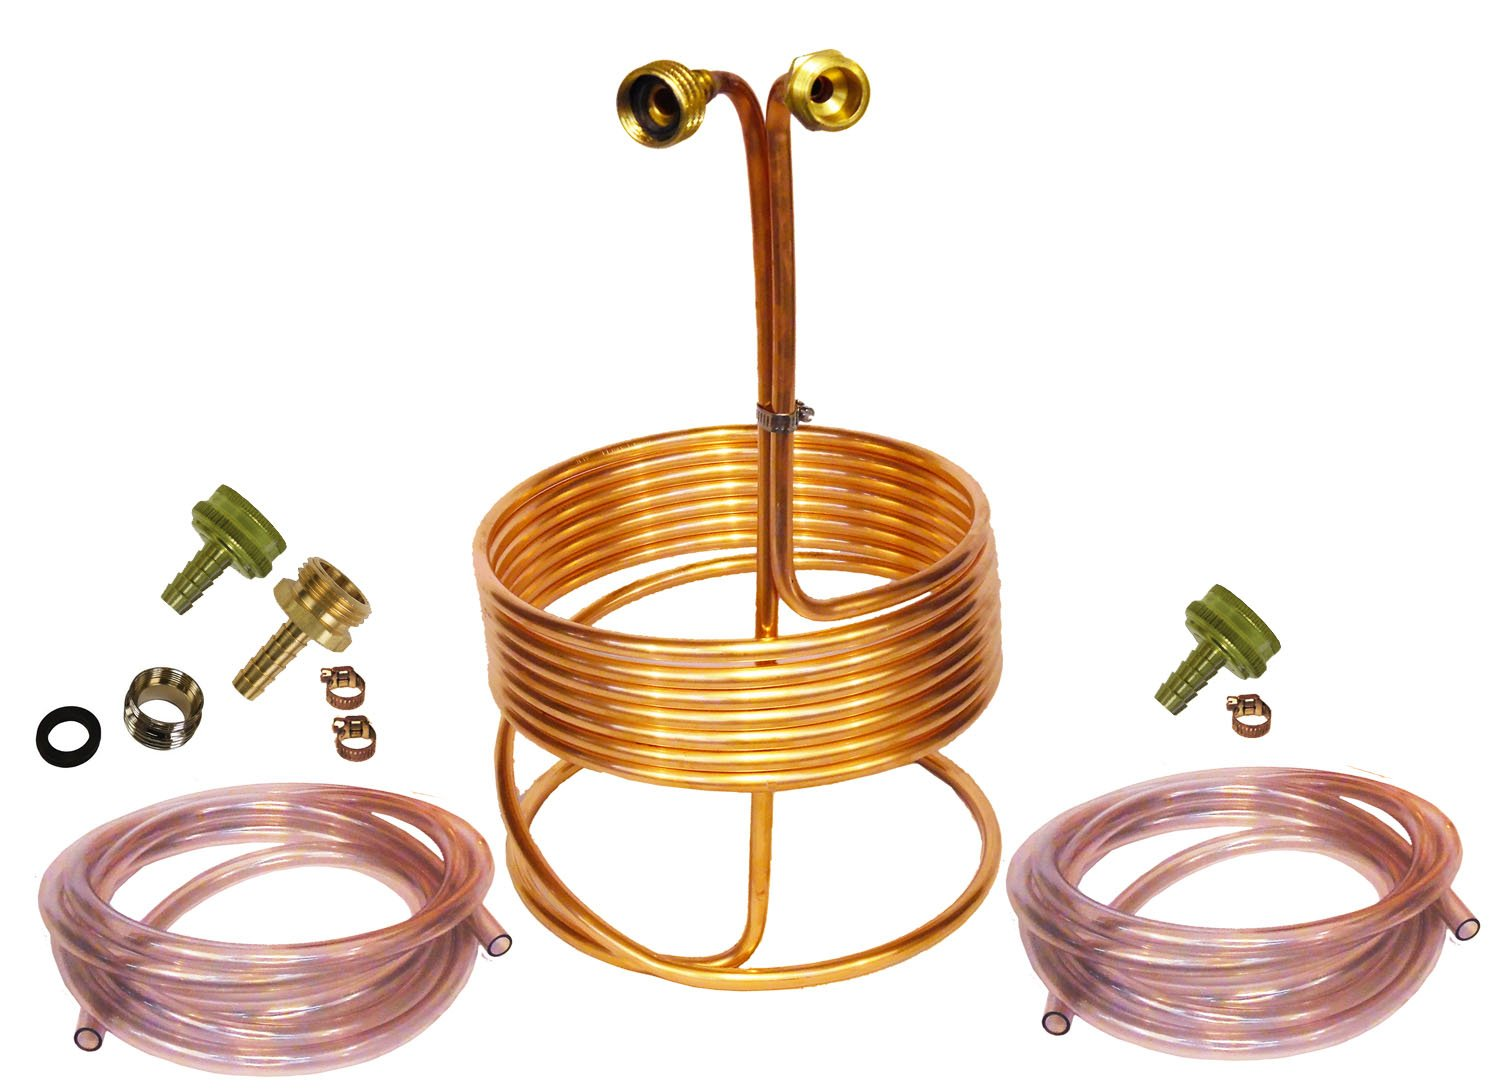 HomeBrewStuff 25' Copper Immersion Wort Chiller - Deluxe Package with 2X 12' Hoses, Fittings, and Faucet Adapter by Home Brew Stuff (Image #1)